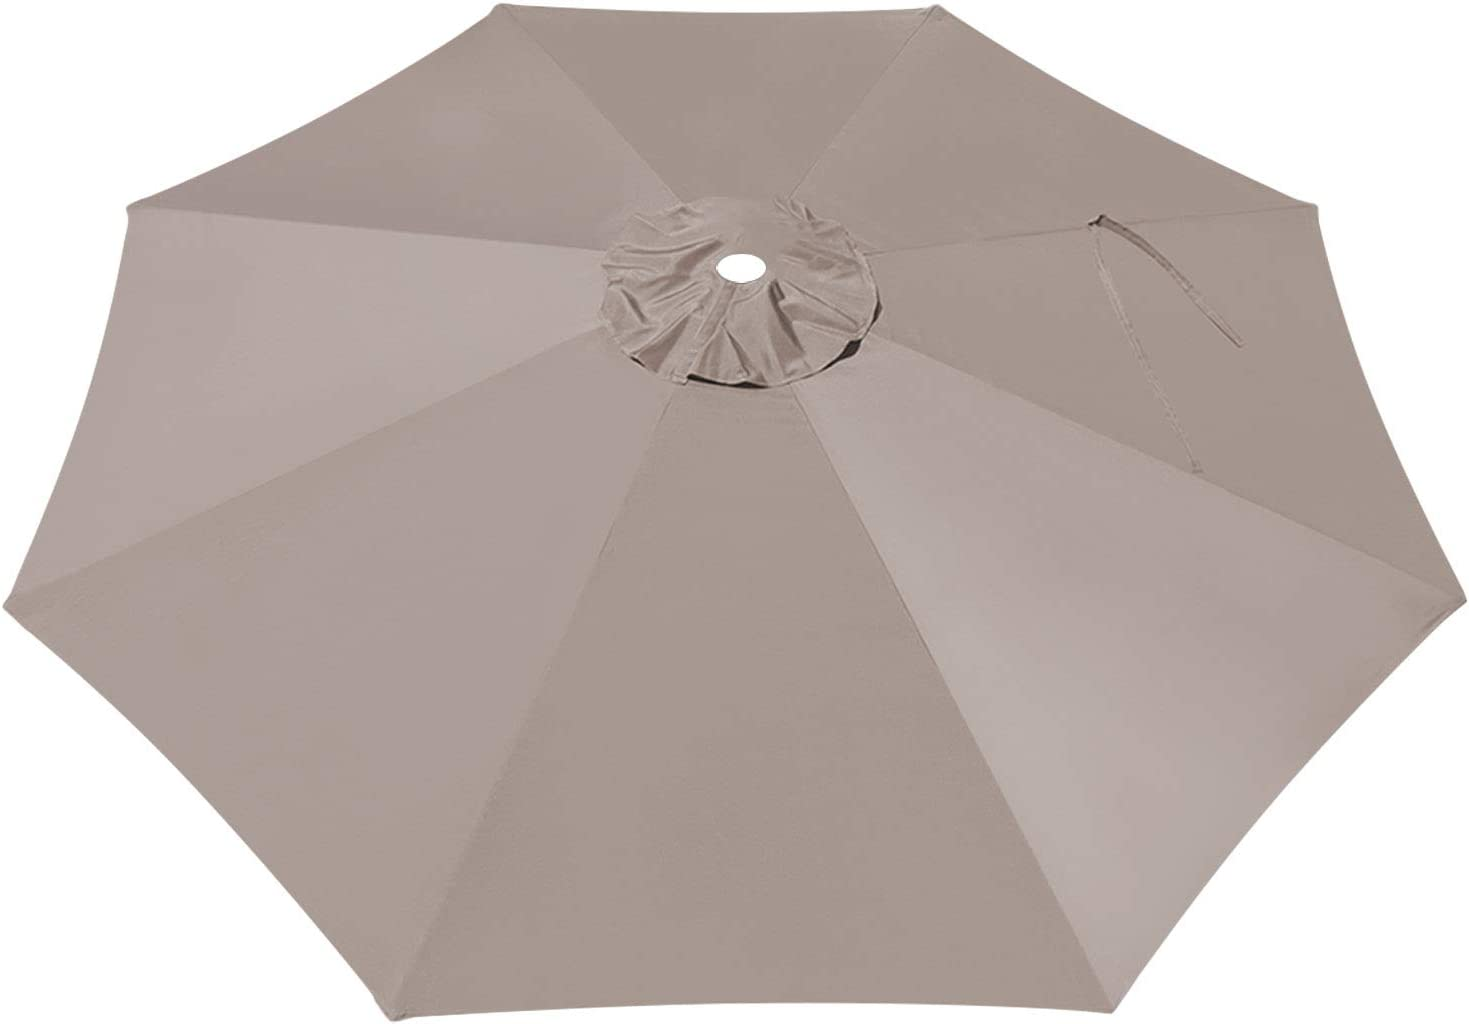 BenefitUSA Replacement Canopy Cover for 10' Sale SALE% OFF Cantilever Ranking TOP5 Patio Umb